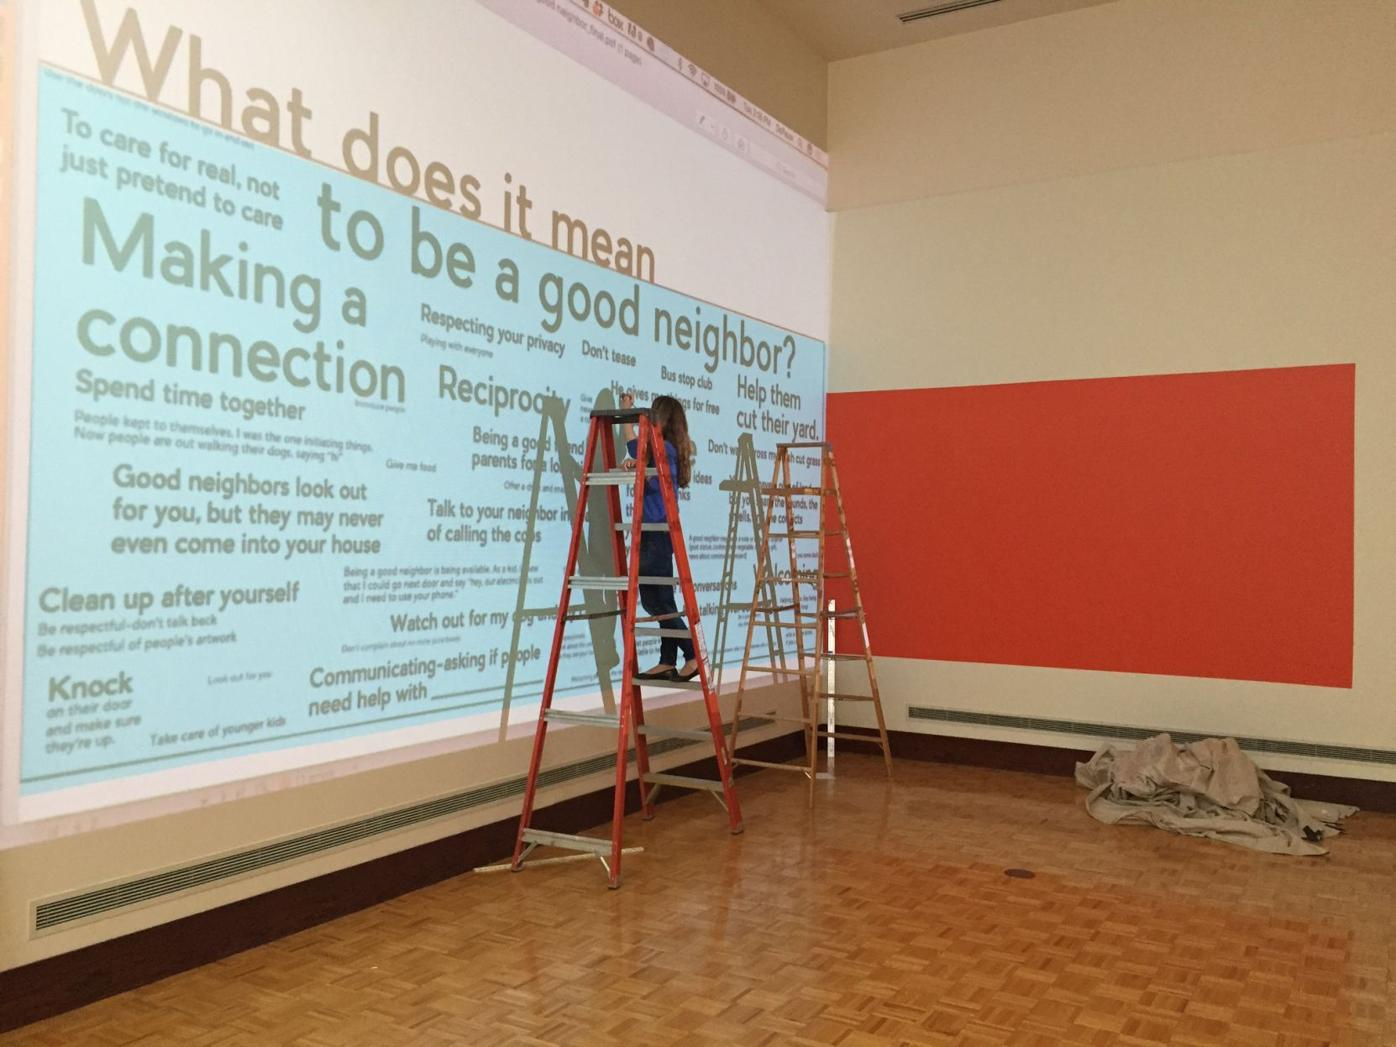 Laura Holzman installing What Does It Mean To Be A Good Neighbor, the House Life Project's contribution to an exhibition on social practice art at UIndy, October 2017. Photo courtesy of Laura Holzman.